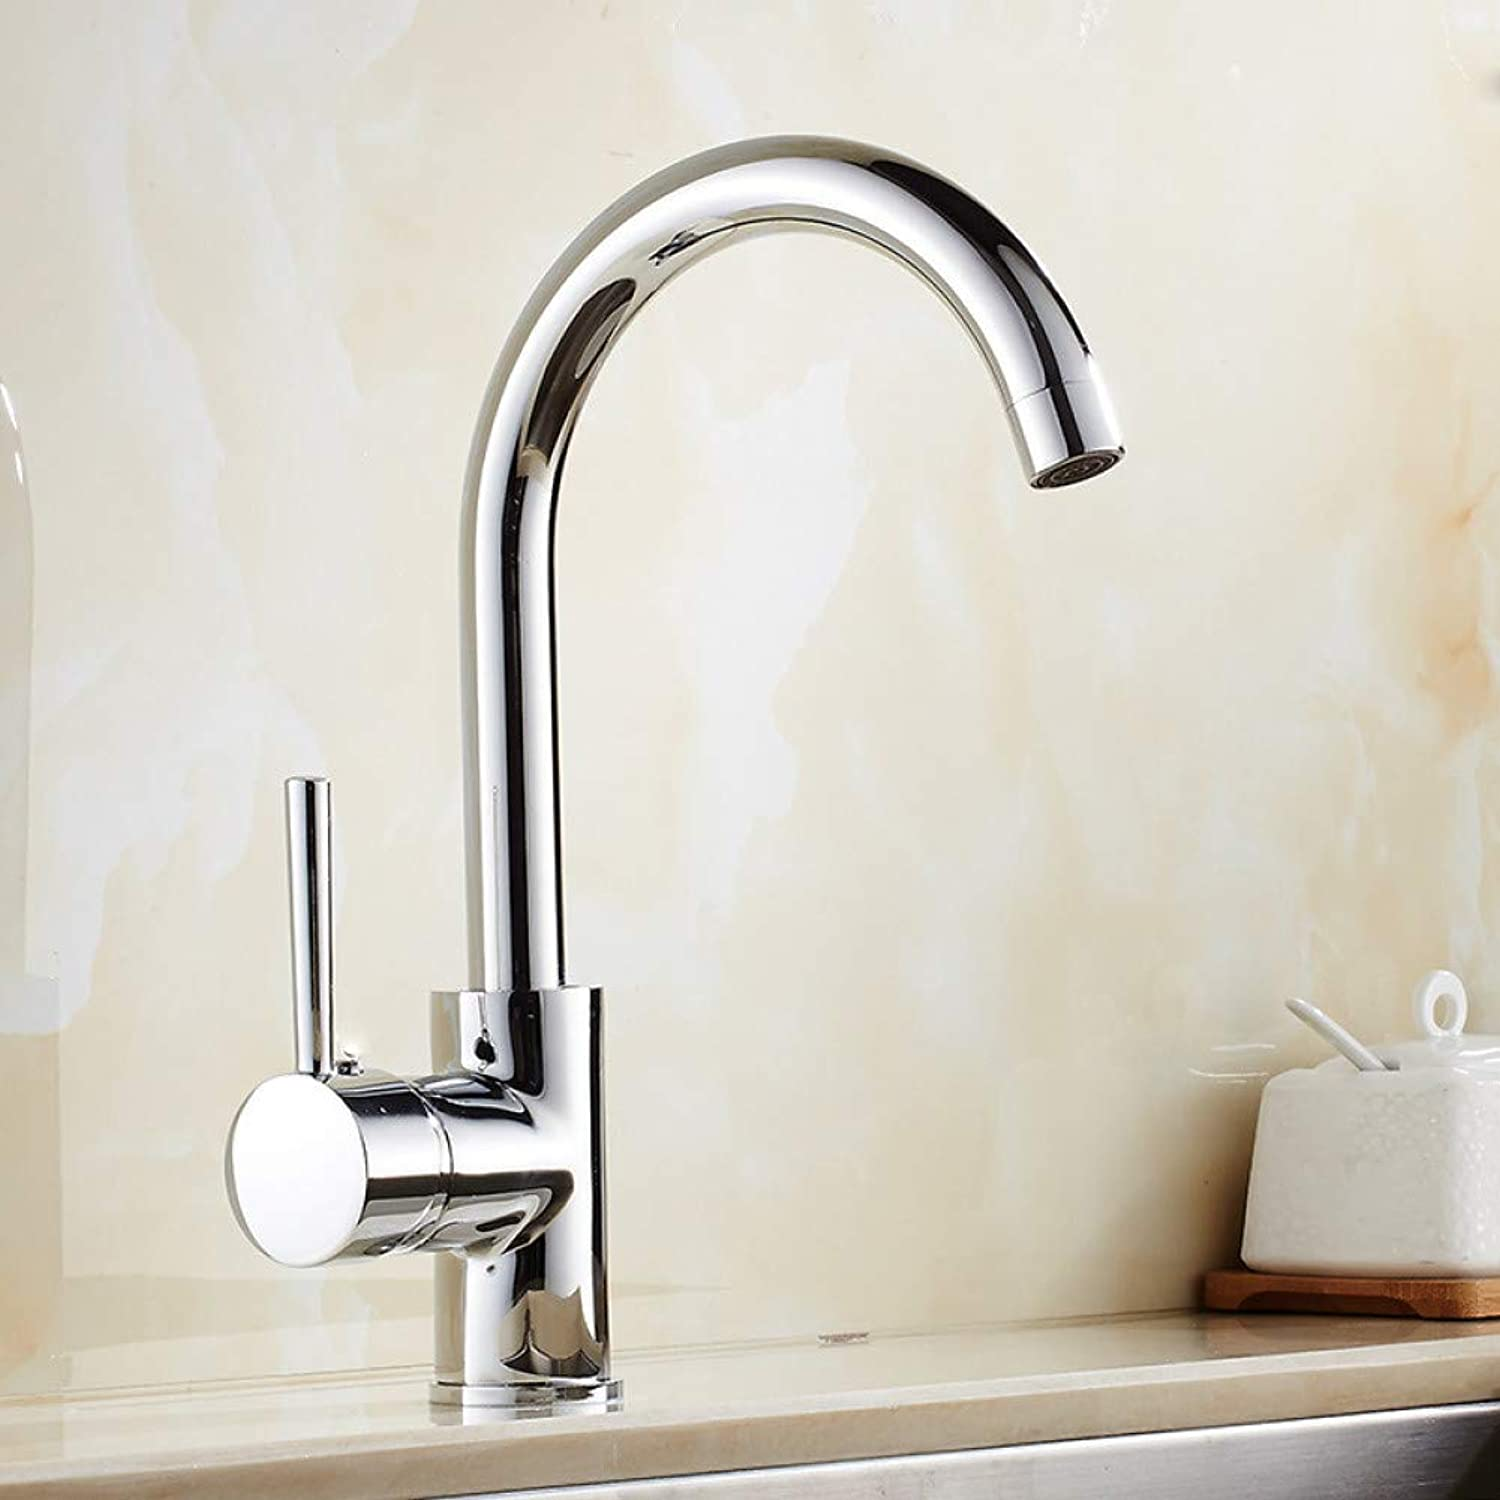 YHSGY Kitchen Taps Copper Electroplating Kitchen Faucet redatable Sink Sink Elbow Faucet